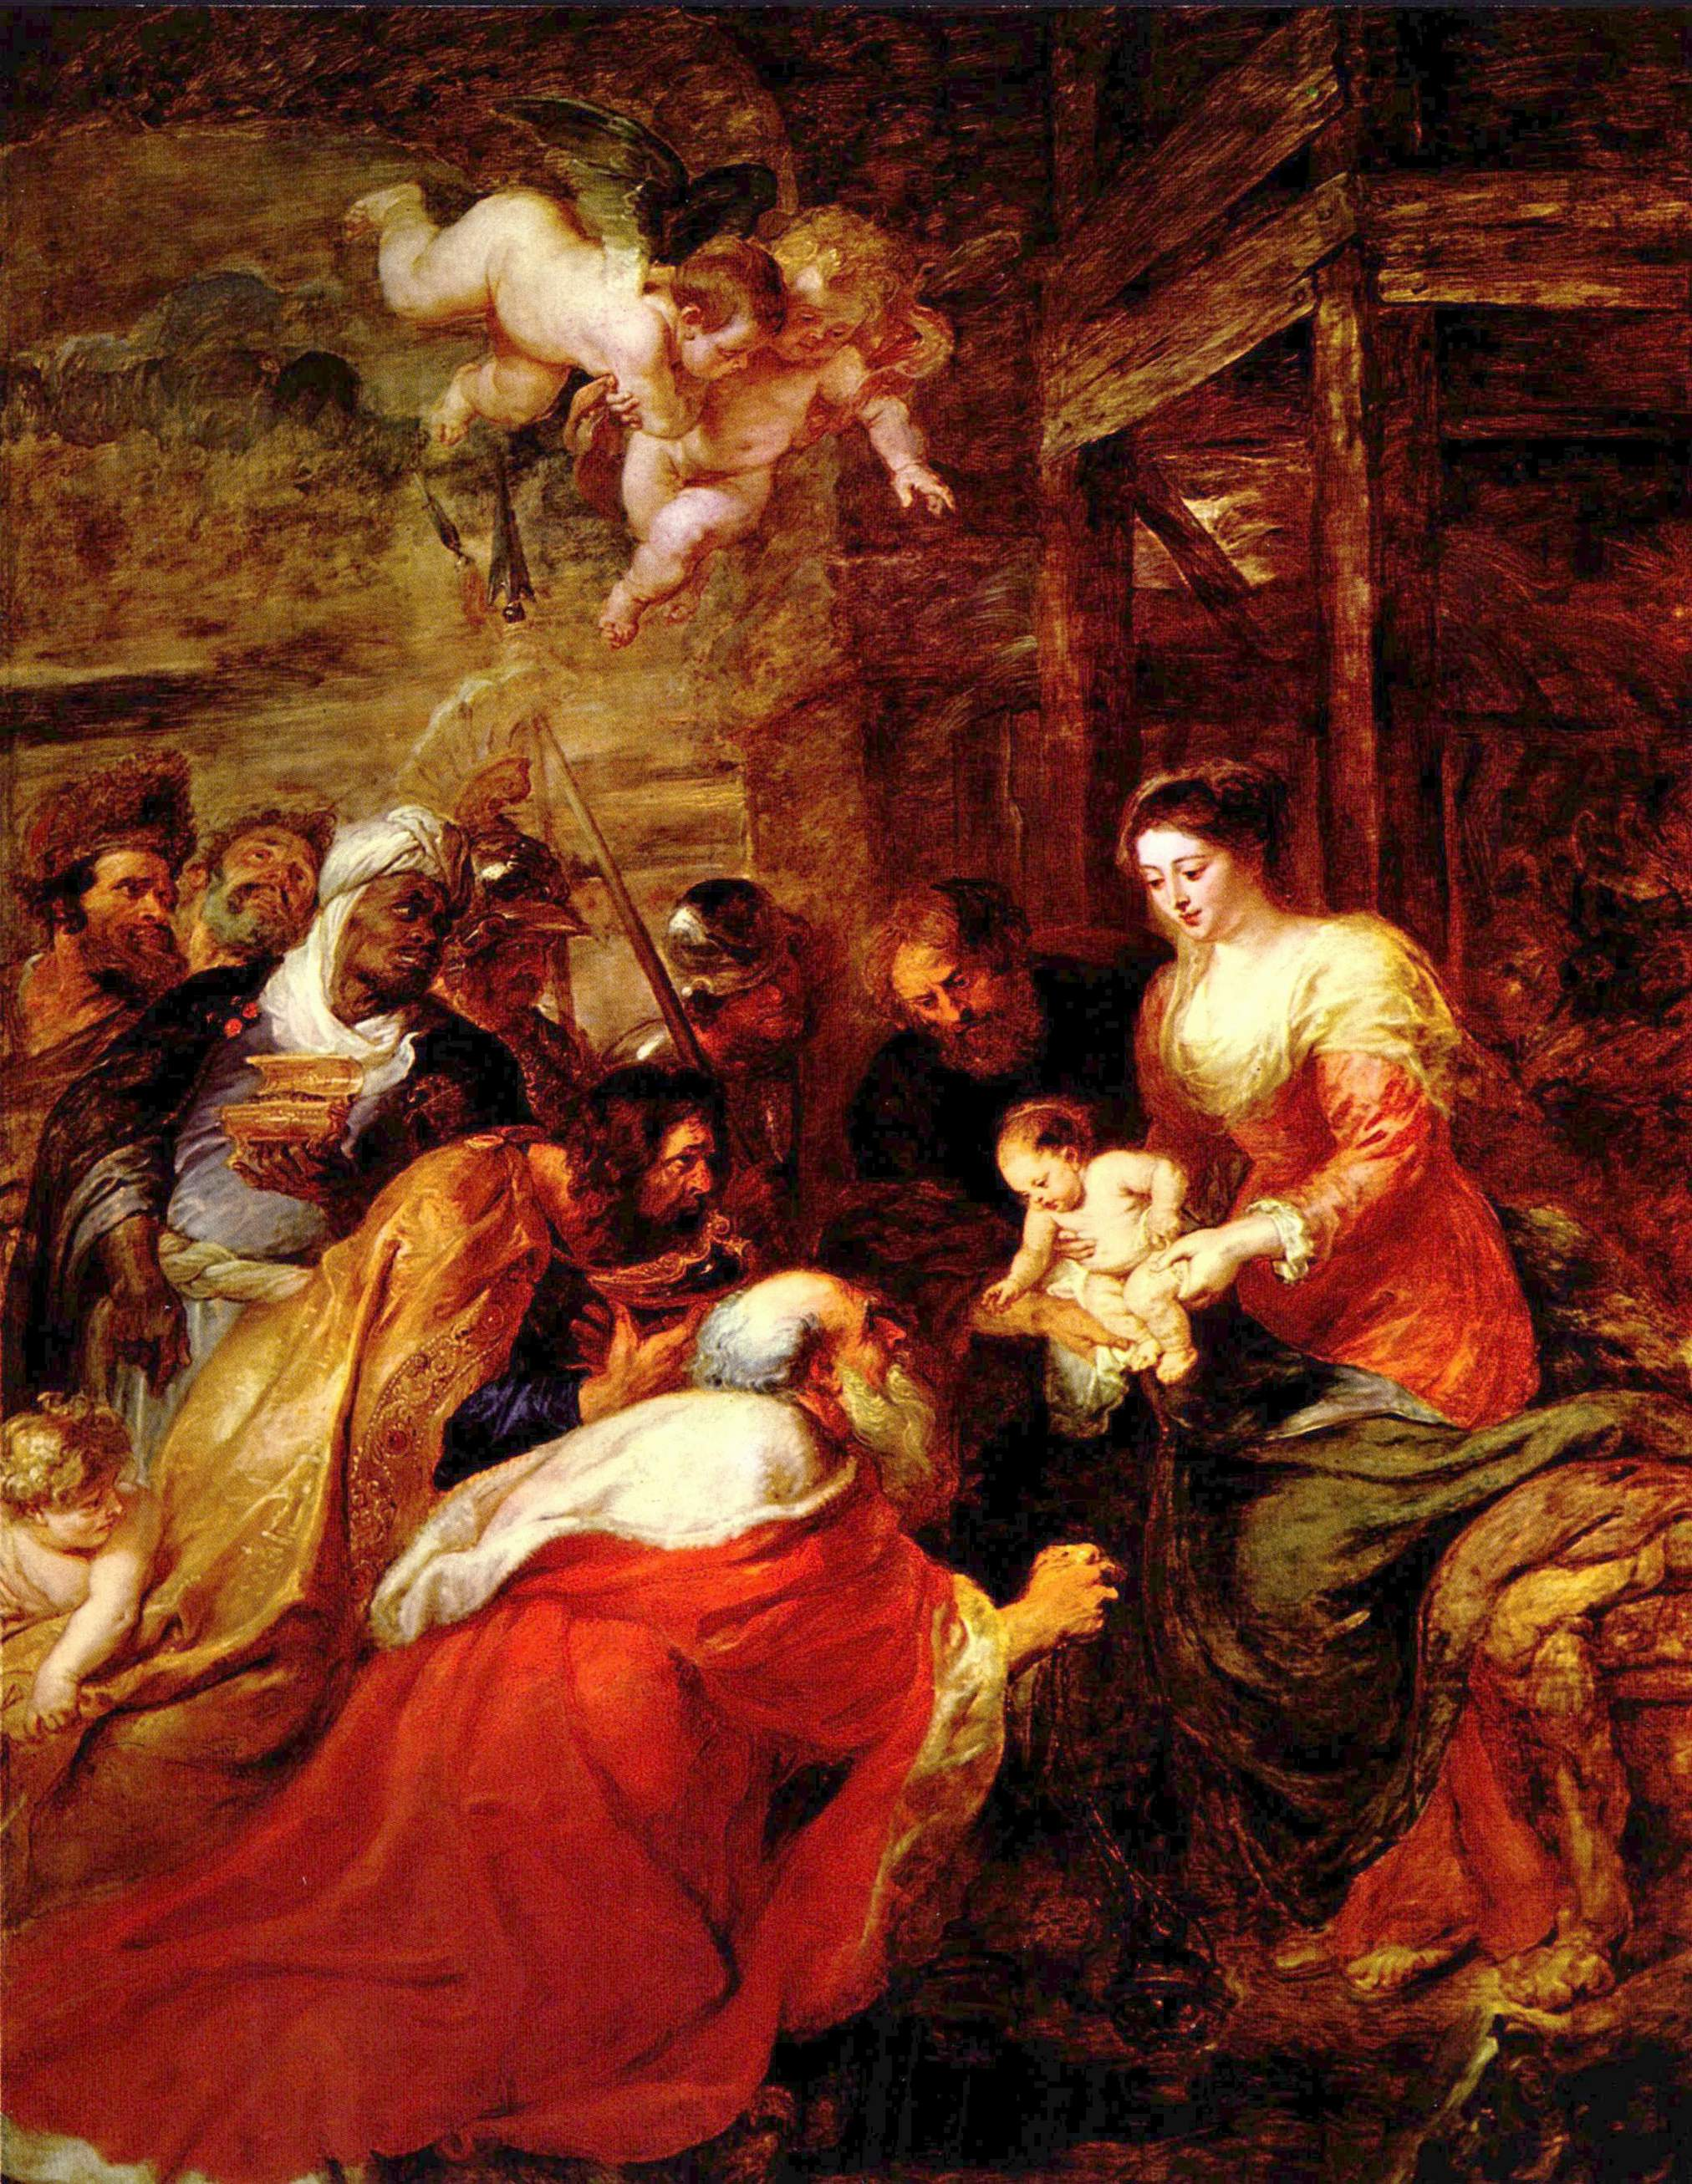 http://upload.wikimedia.org/wikipedia/commons/8/82/Peter_Paul_Rubens_009.jpg